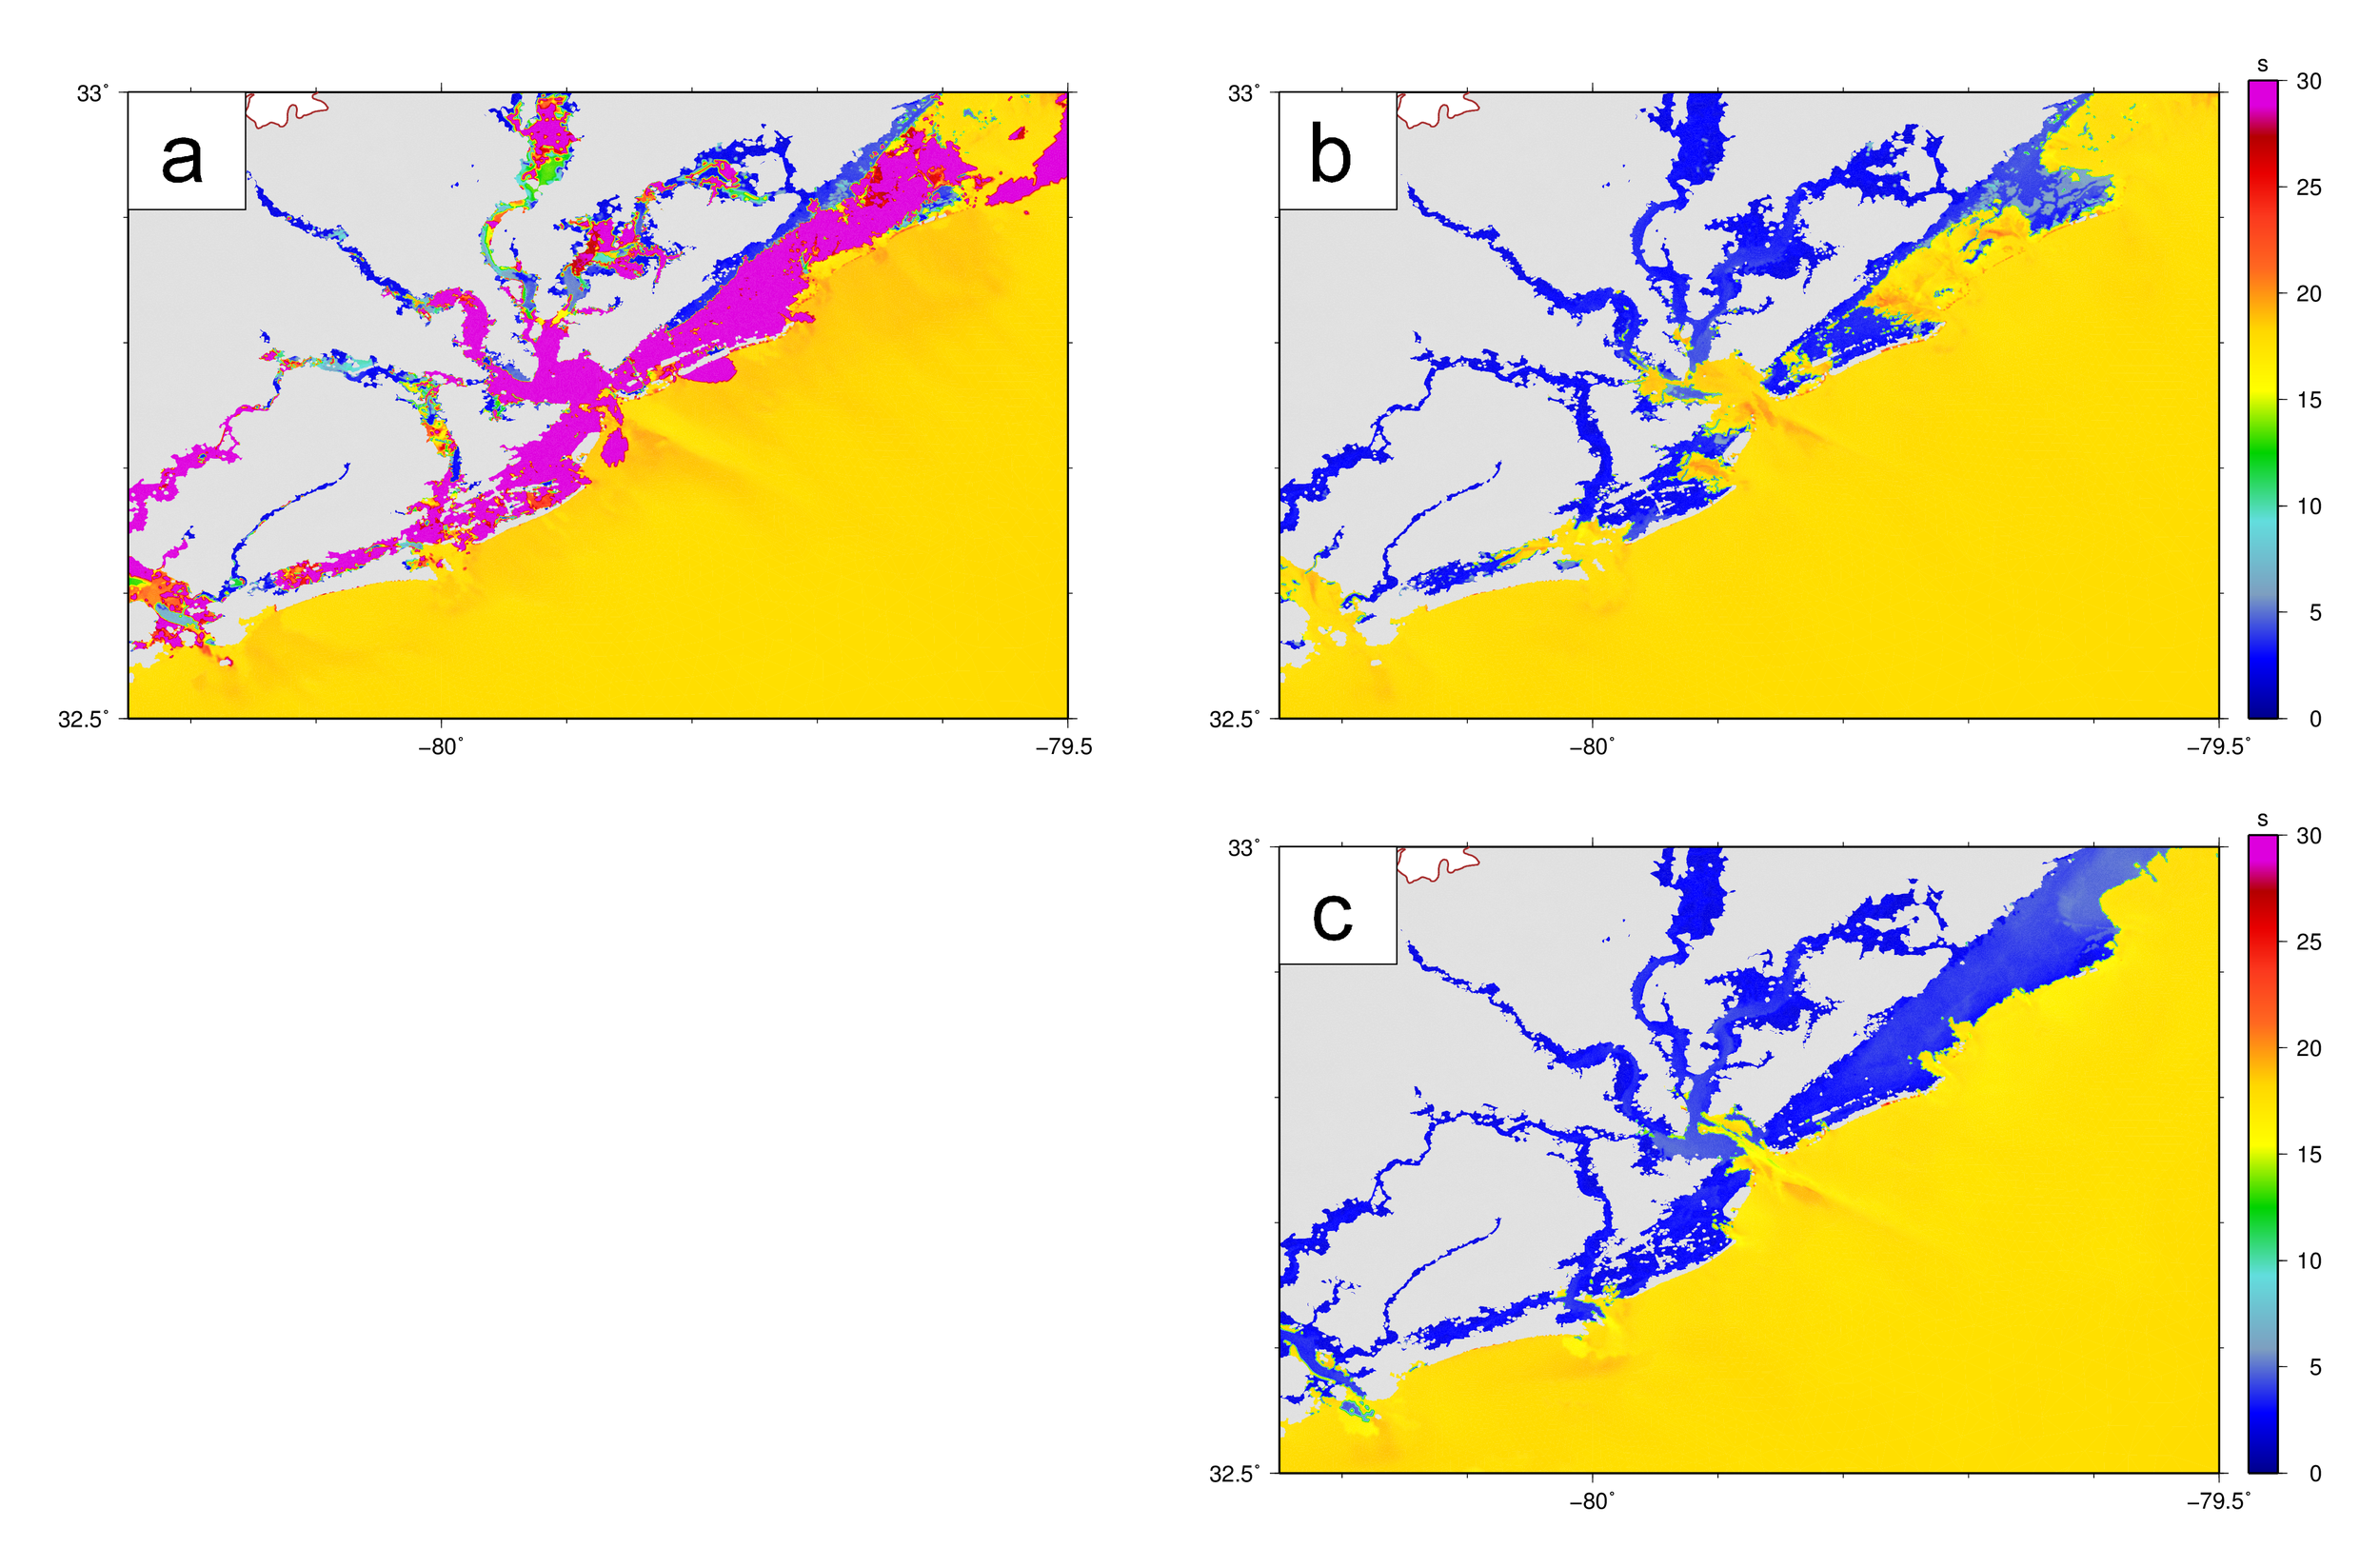 Maximum values for peak wave periods (s) near Charleston Harbor during the Hugo hindcast on the SC12 mesh.  The peak periods are shown: (a) with unlimited spectral propagation velocities, (b) with both velocities limited with CSIGMA CFL=0.25 CTHETA CFL=0.25, and (c) with the updated treatment of the propagation velocities.